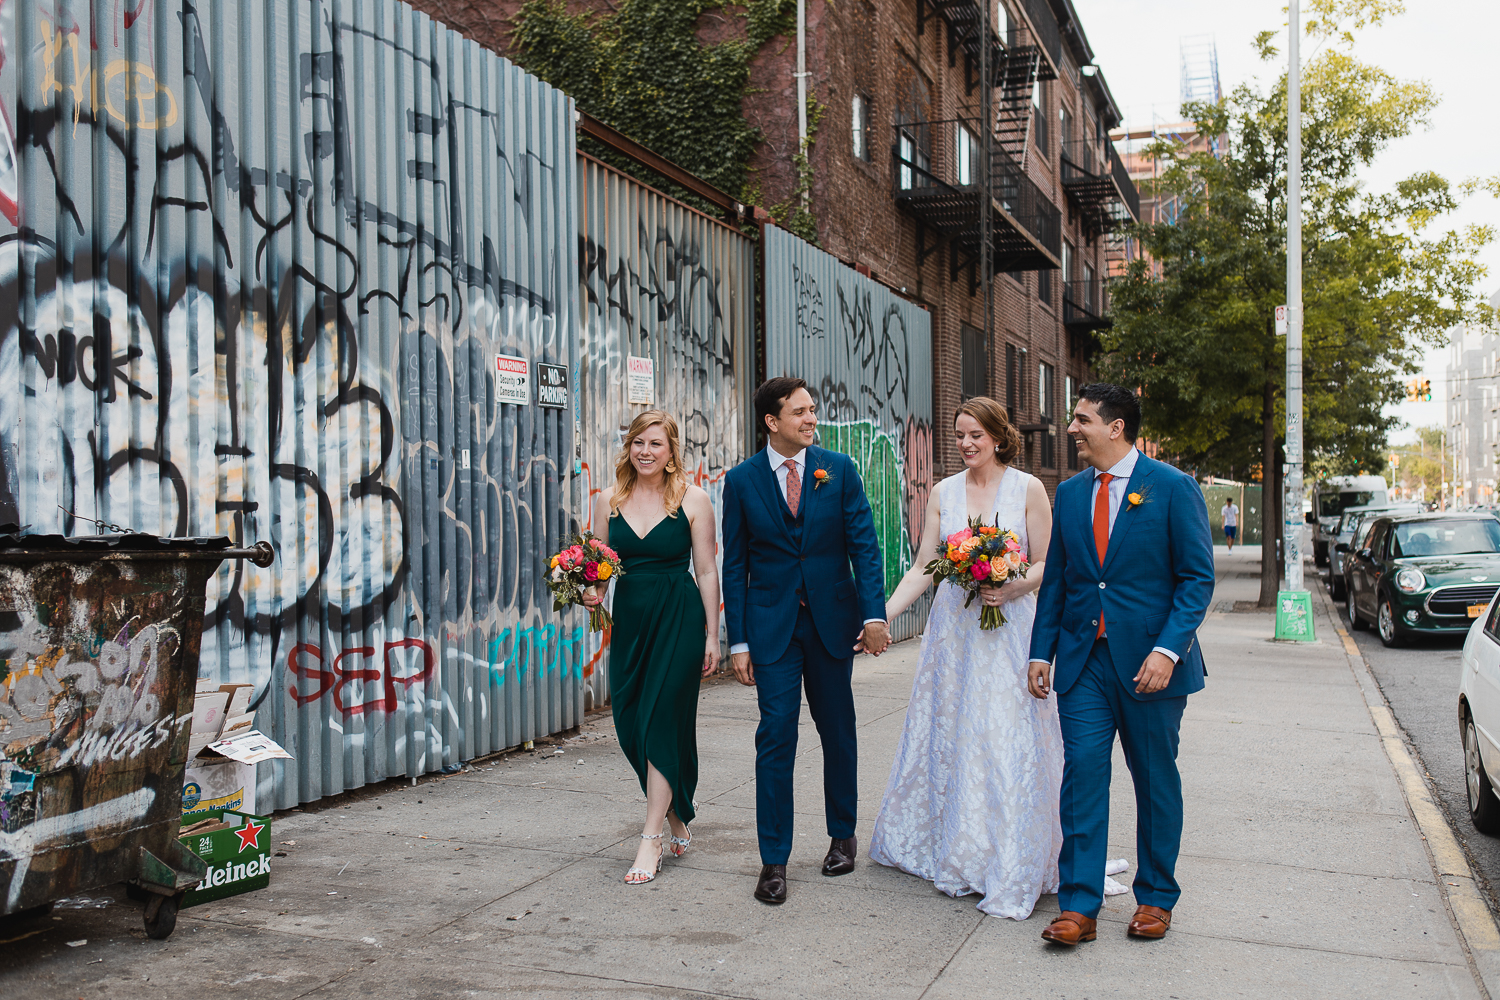 bride, groom, bridesmaid, and groomman on the streets of Brooklyn